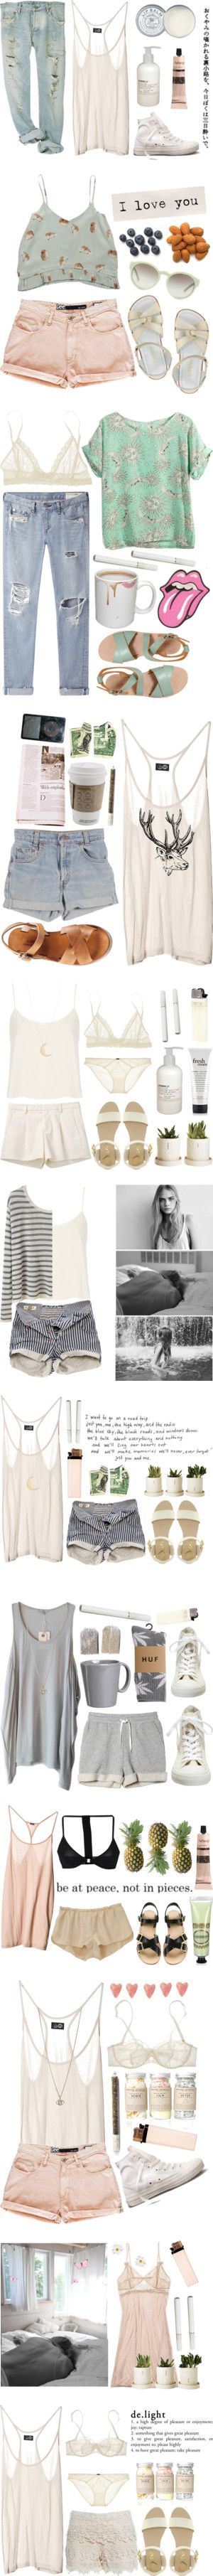 Clothes Casual Outift for • teens • movies • girls • women •. summer • fall • spring • winter • outfit ideas • dates • parties Polyvore :) Catalina Christiano Love.